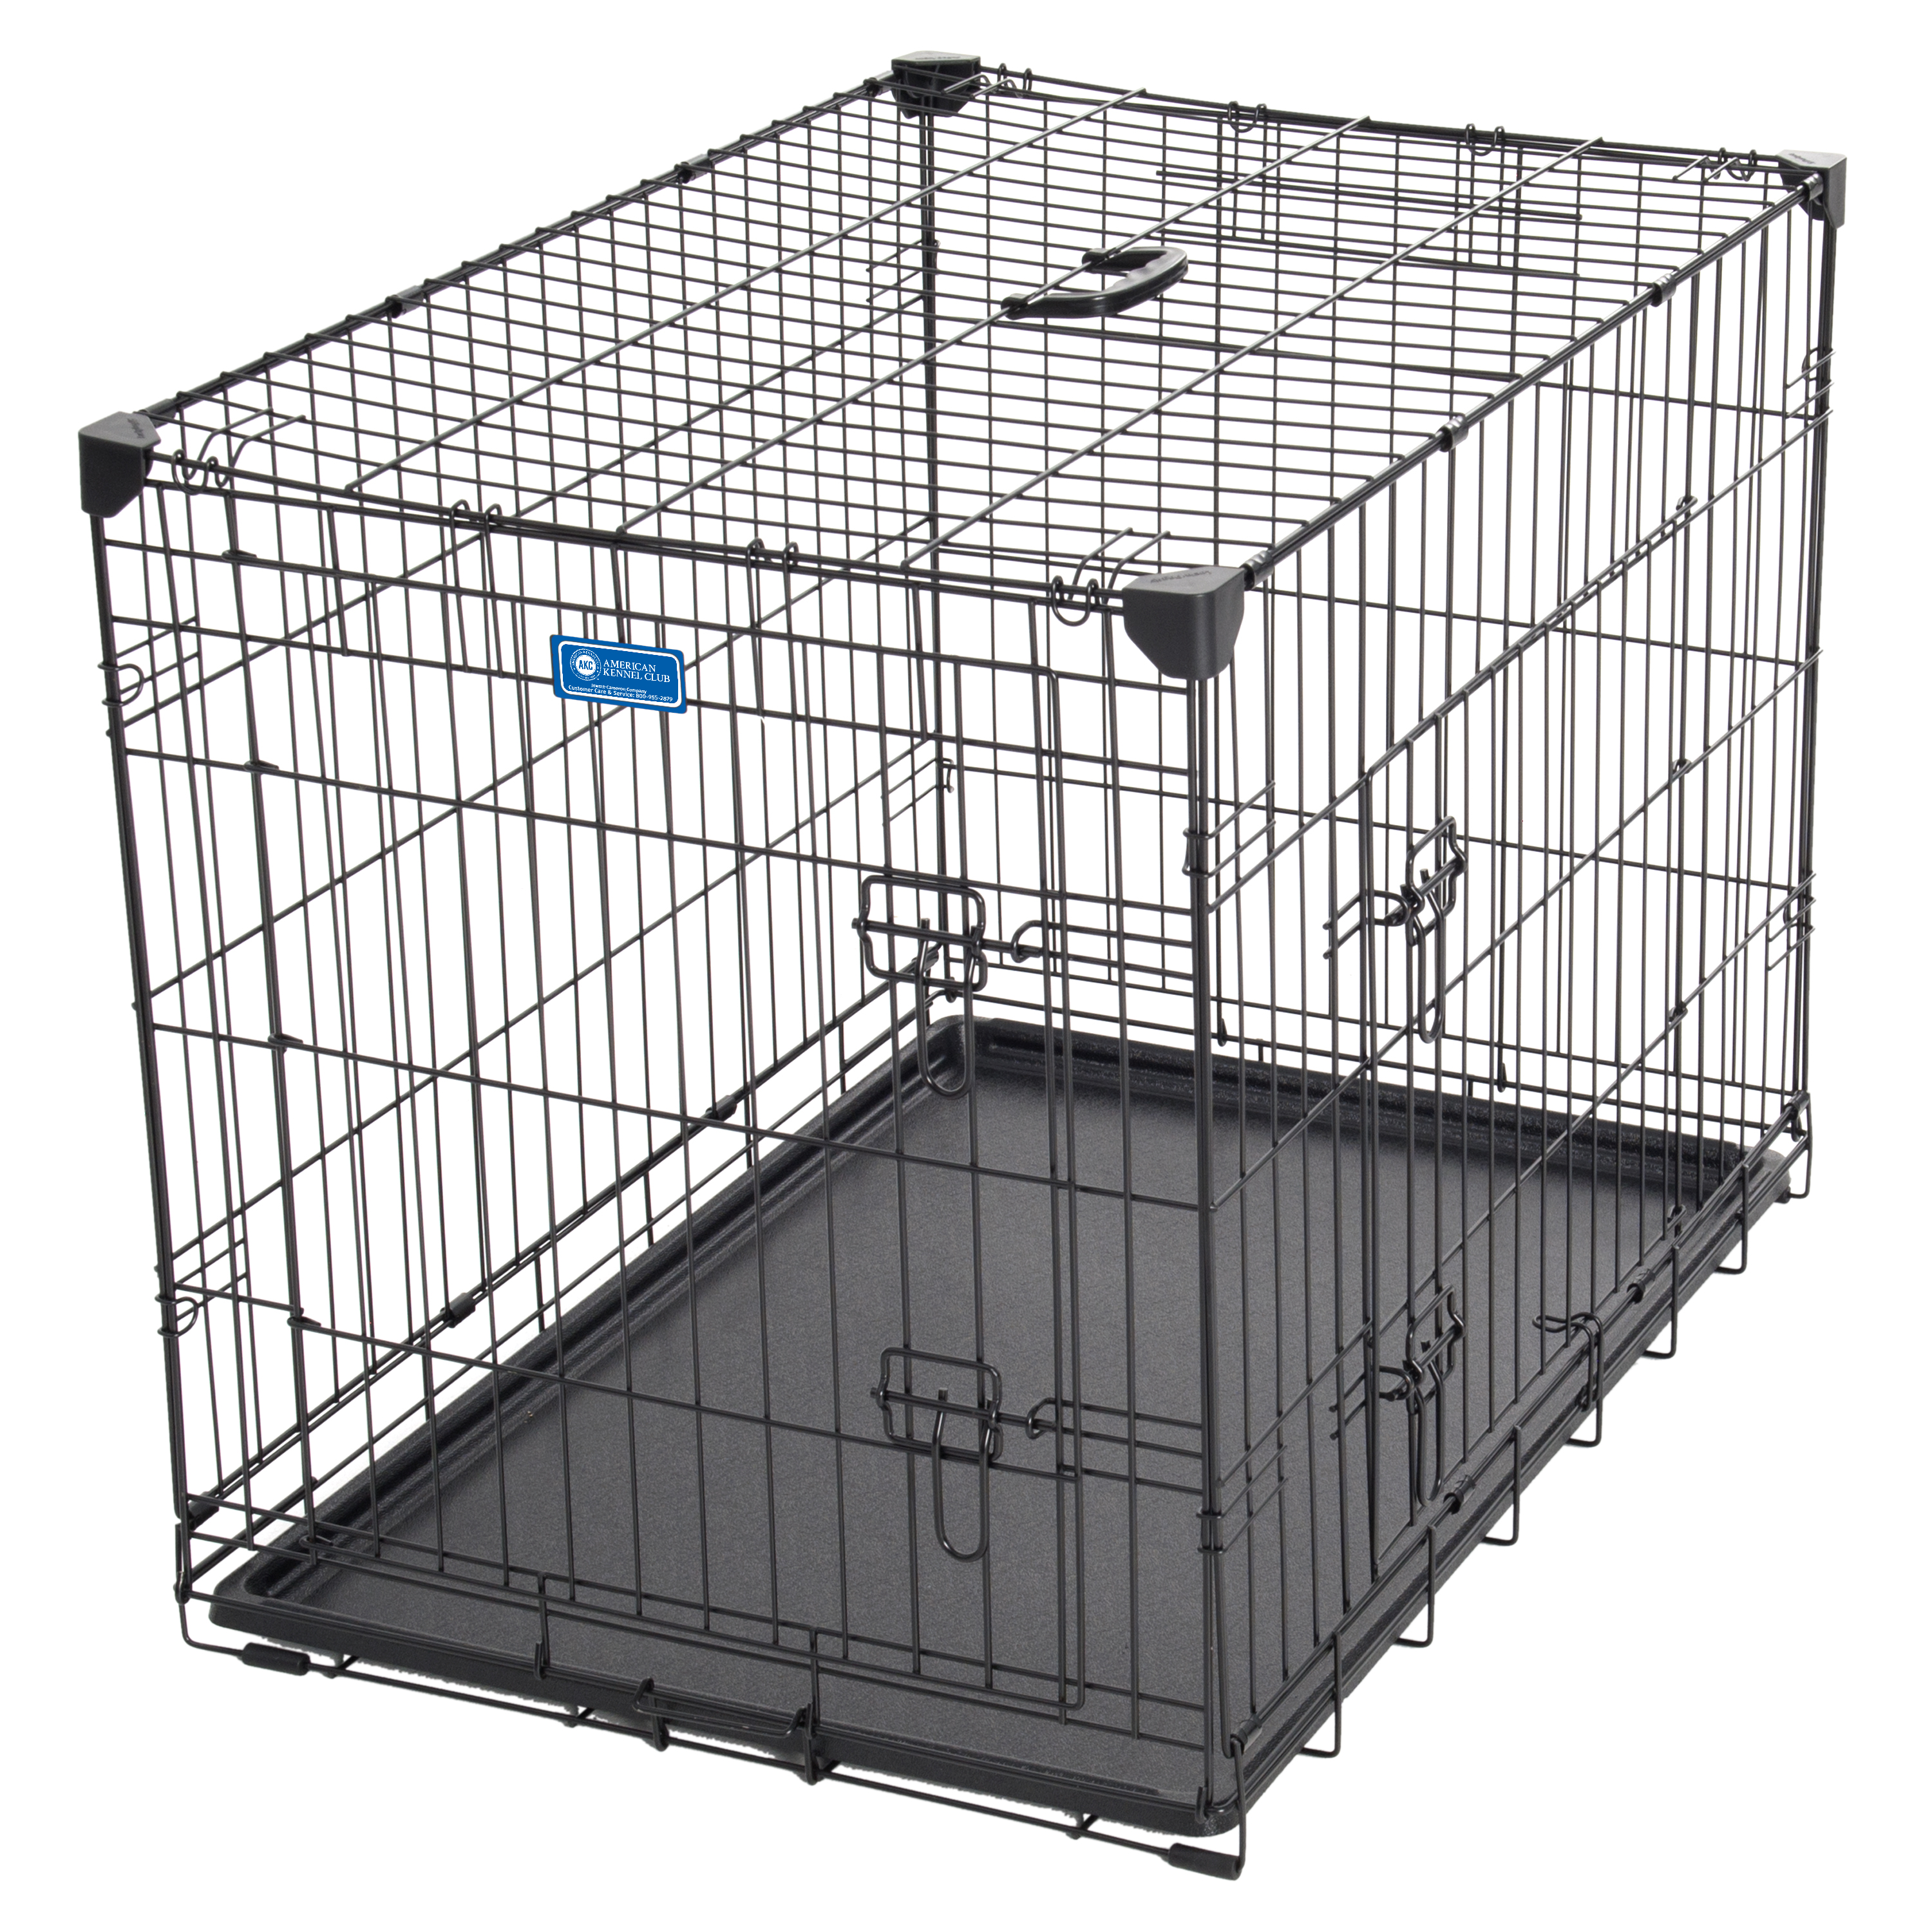 AKC® 30L x 21W x 24H Inch 2-Door Dog Training Crate with Corner Stabilizers, Rust-Resistant Wire, Handle, Leak-Proof Removable Pan, Free Training Guide